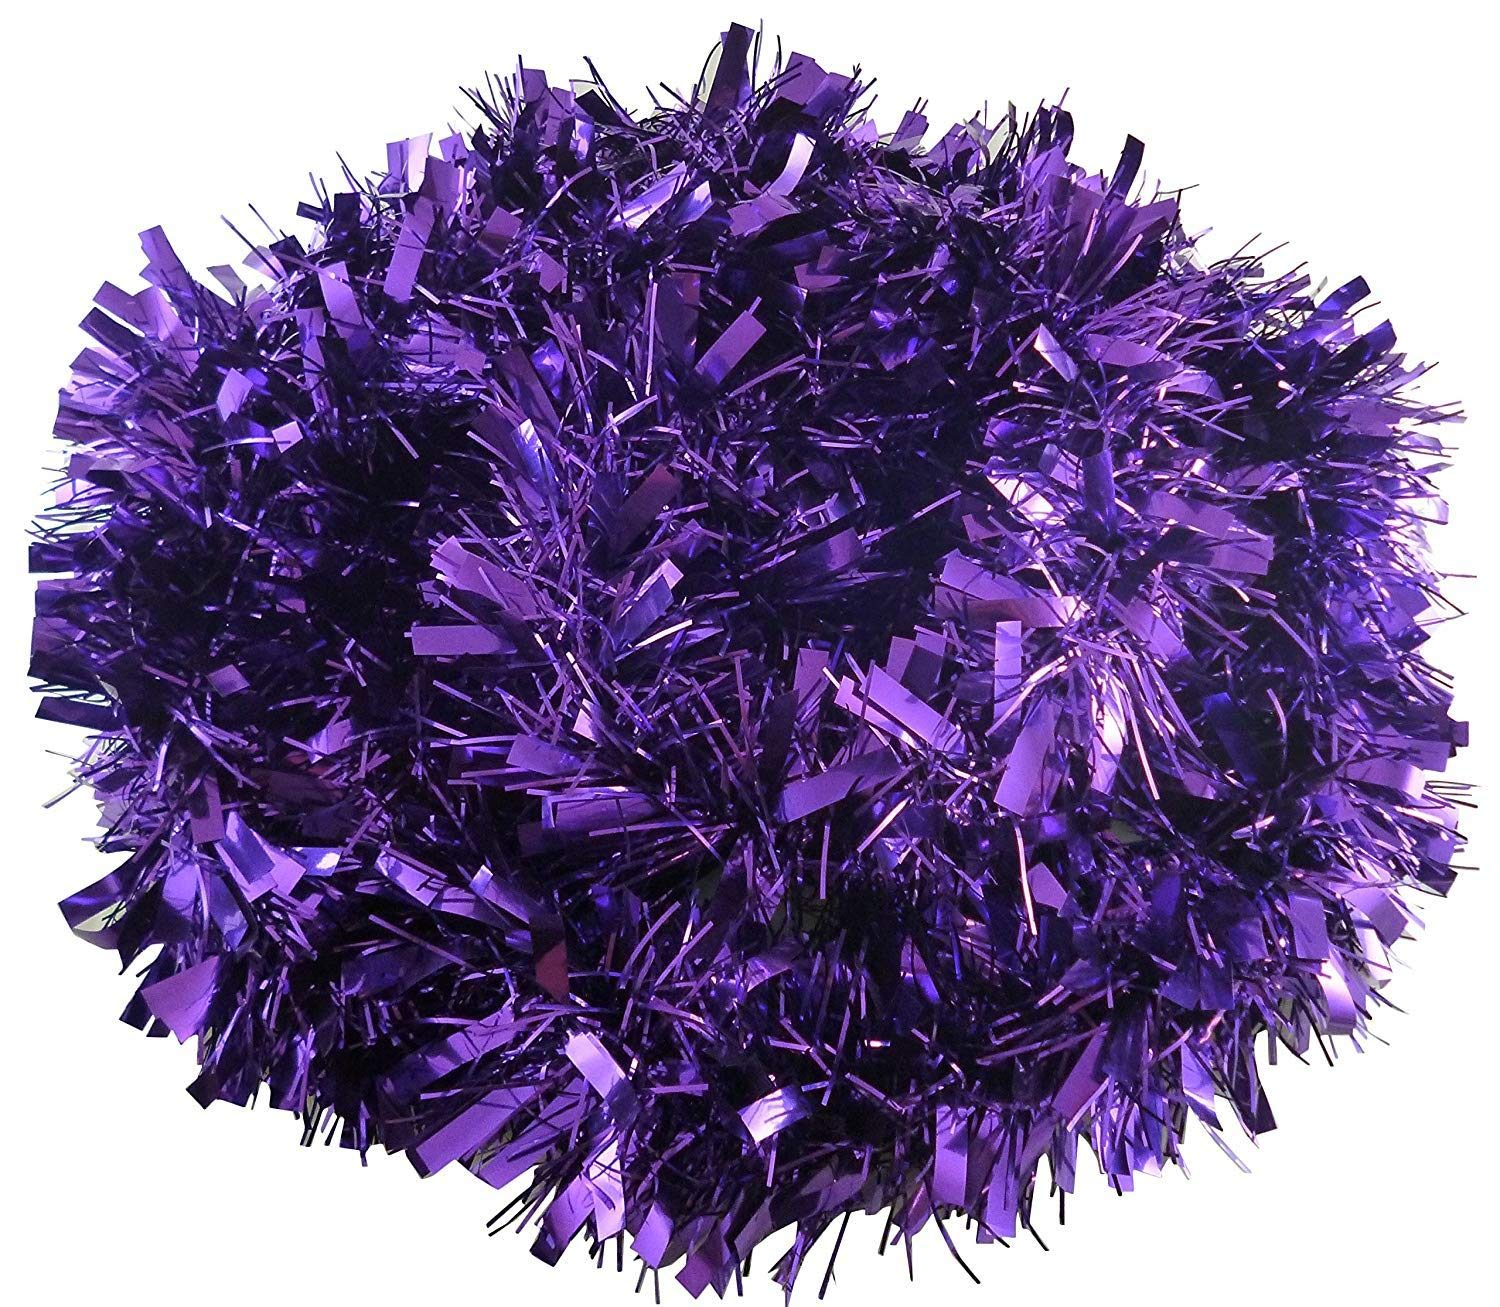 Blue Luxury Deluxe Chunky Christmas Tinsel Garland Tree Decoration 120mm Width Shatchi